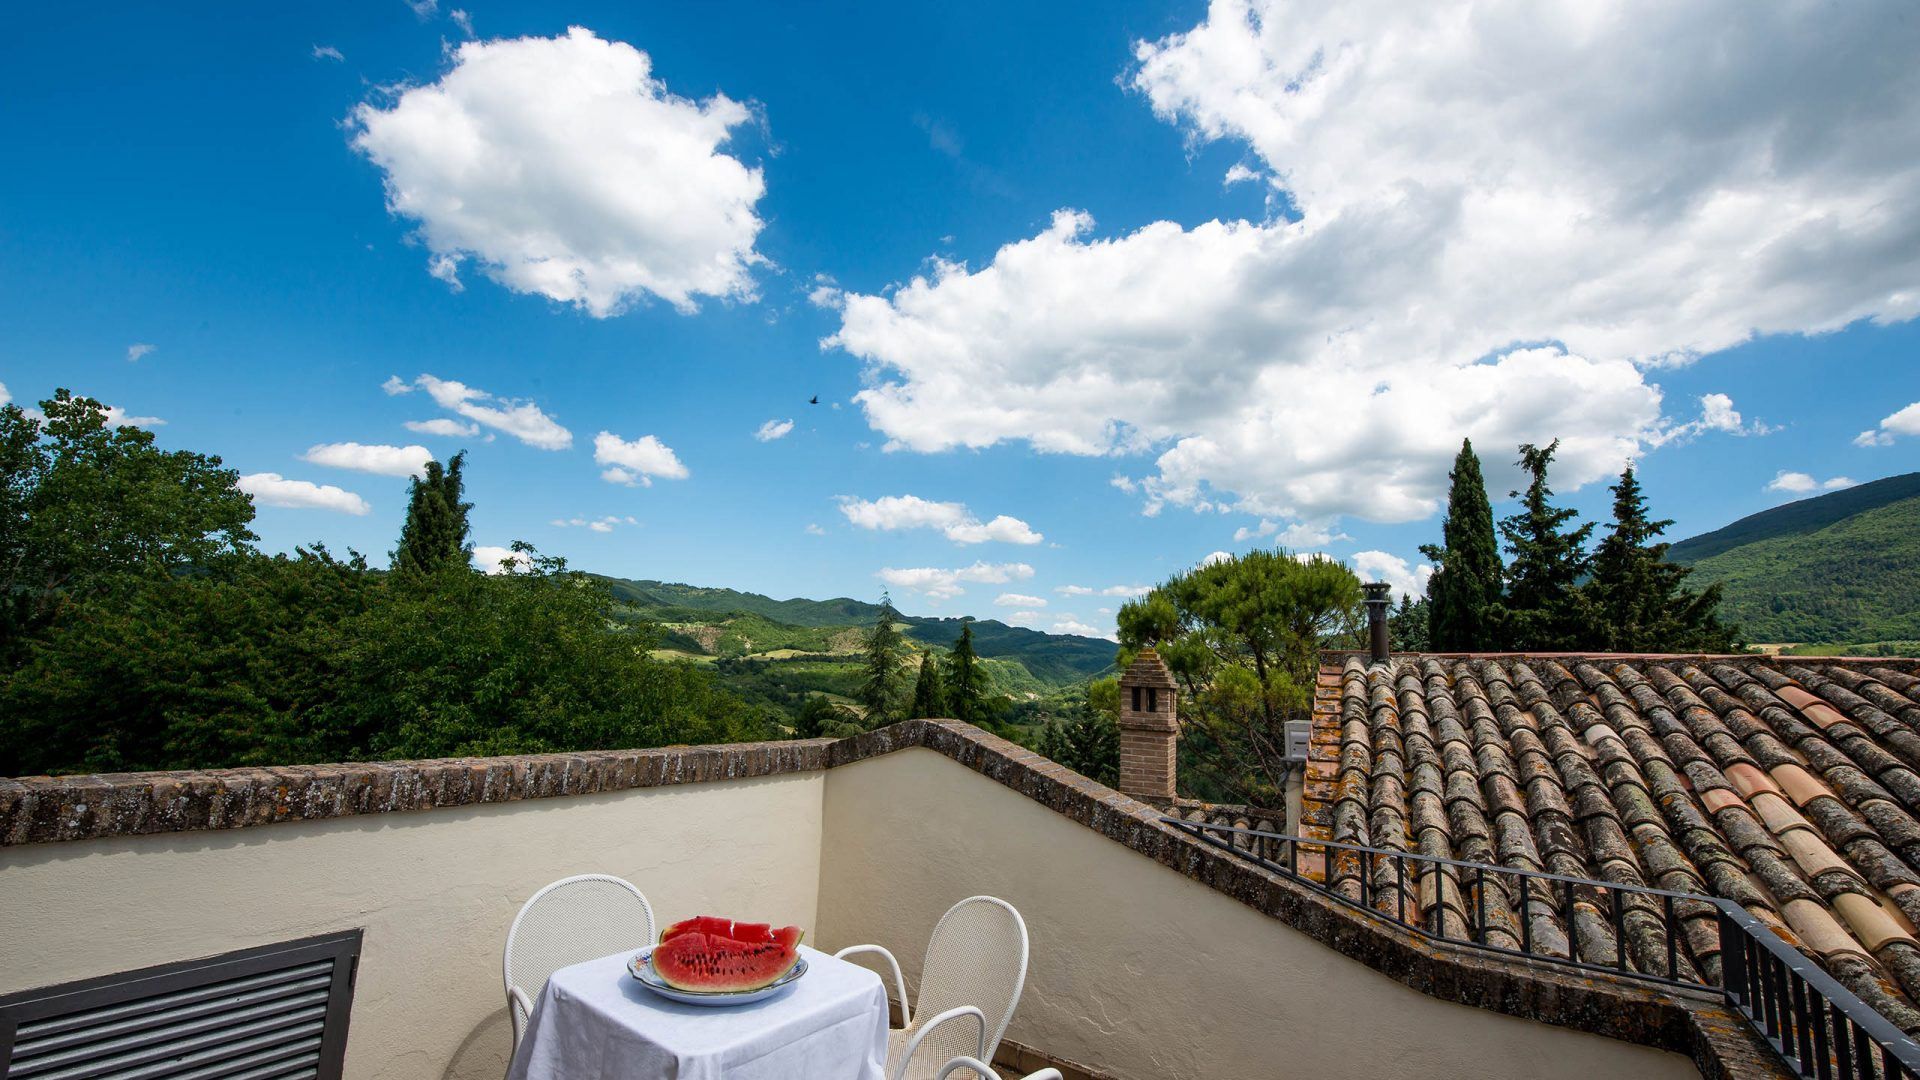 Appartamento vacanze - Assisi, Umbria - Villamena Resort Assisi